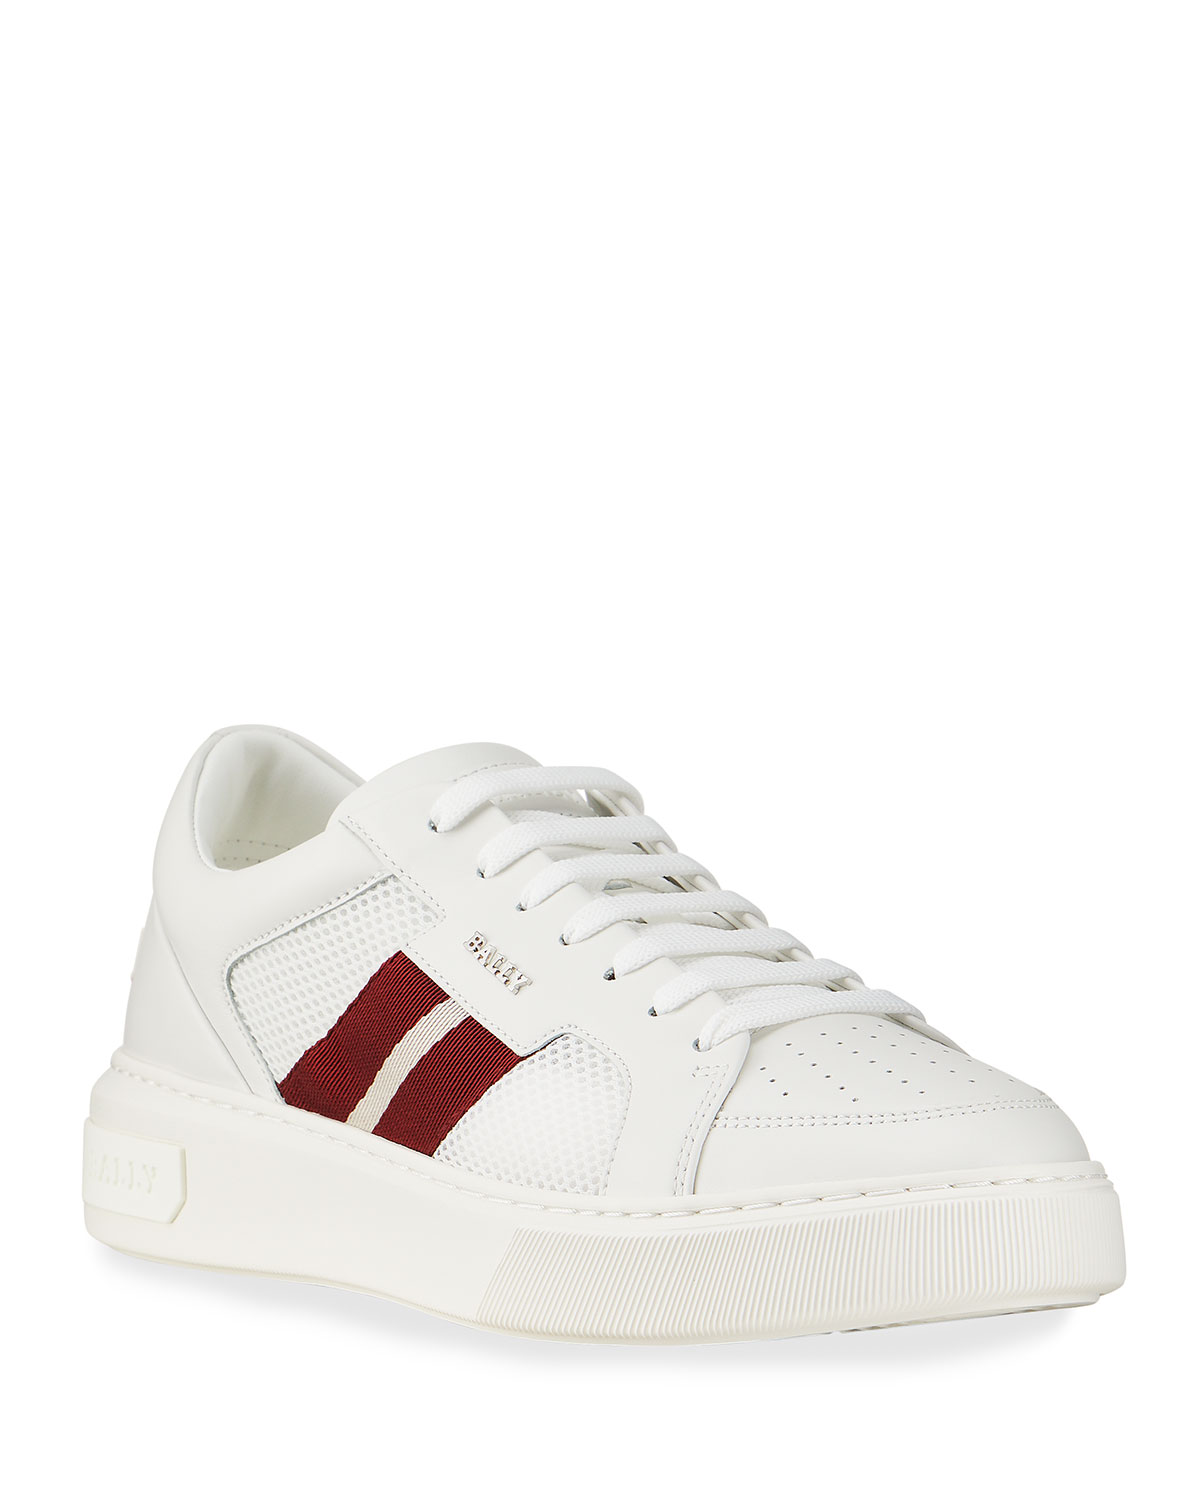 Men's Melyst 07 Trainspotting Mesh & Leather Low-Top Sneakers